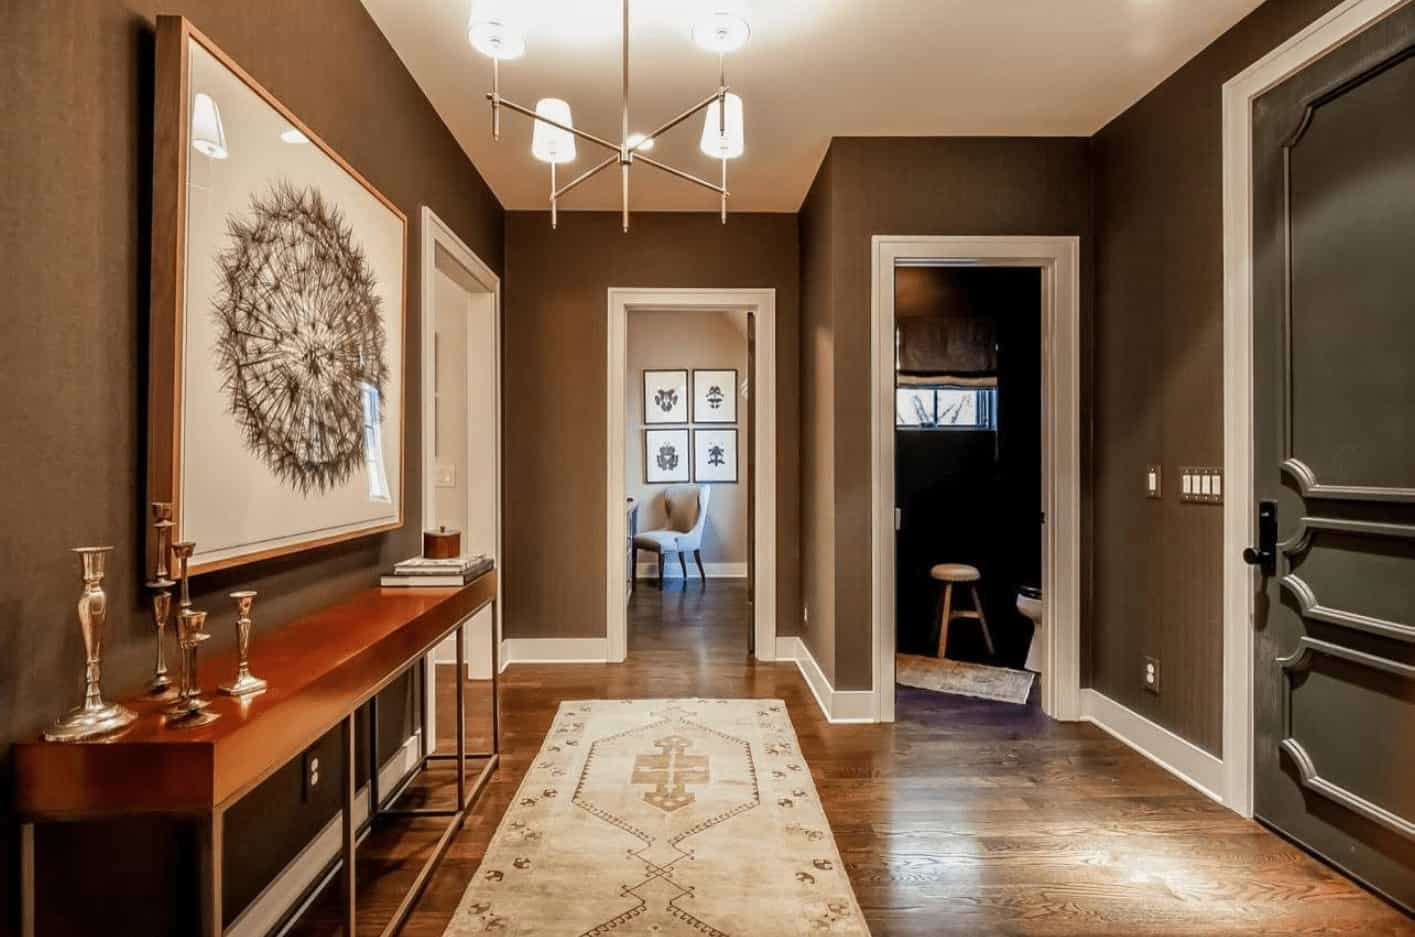 The transitional foyer features a contemporary chandelier and a metal console table that's accented with a huge framed wall art mounted on the brown wall.